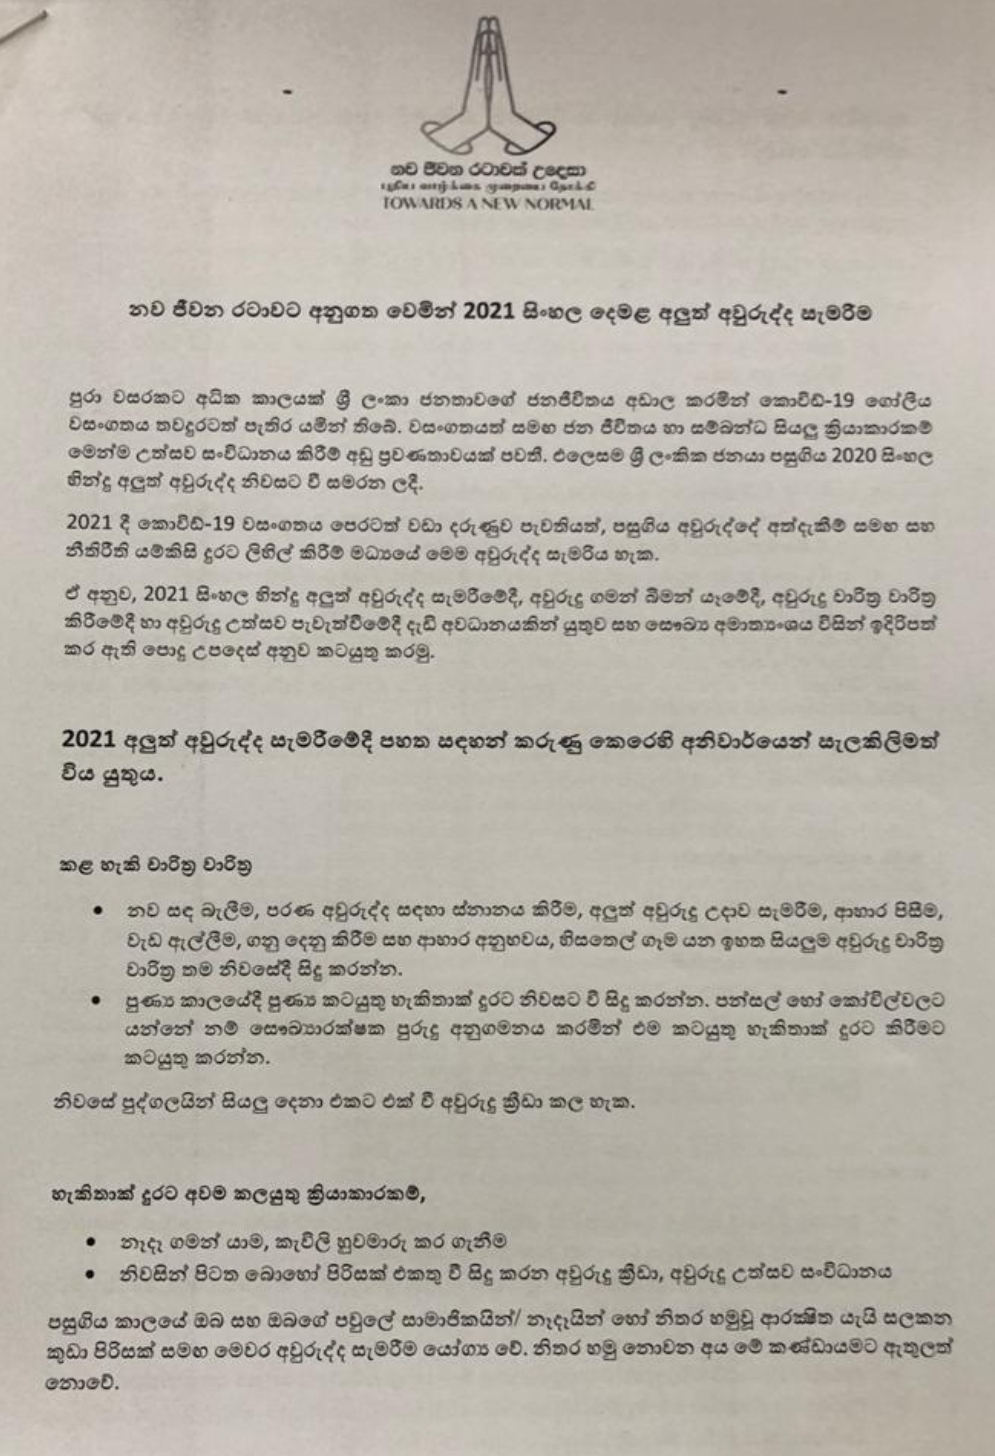 Covid-19 guidelines for Sinhala & Tamil New Year festivities